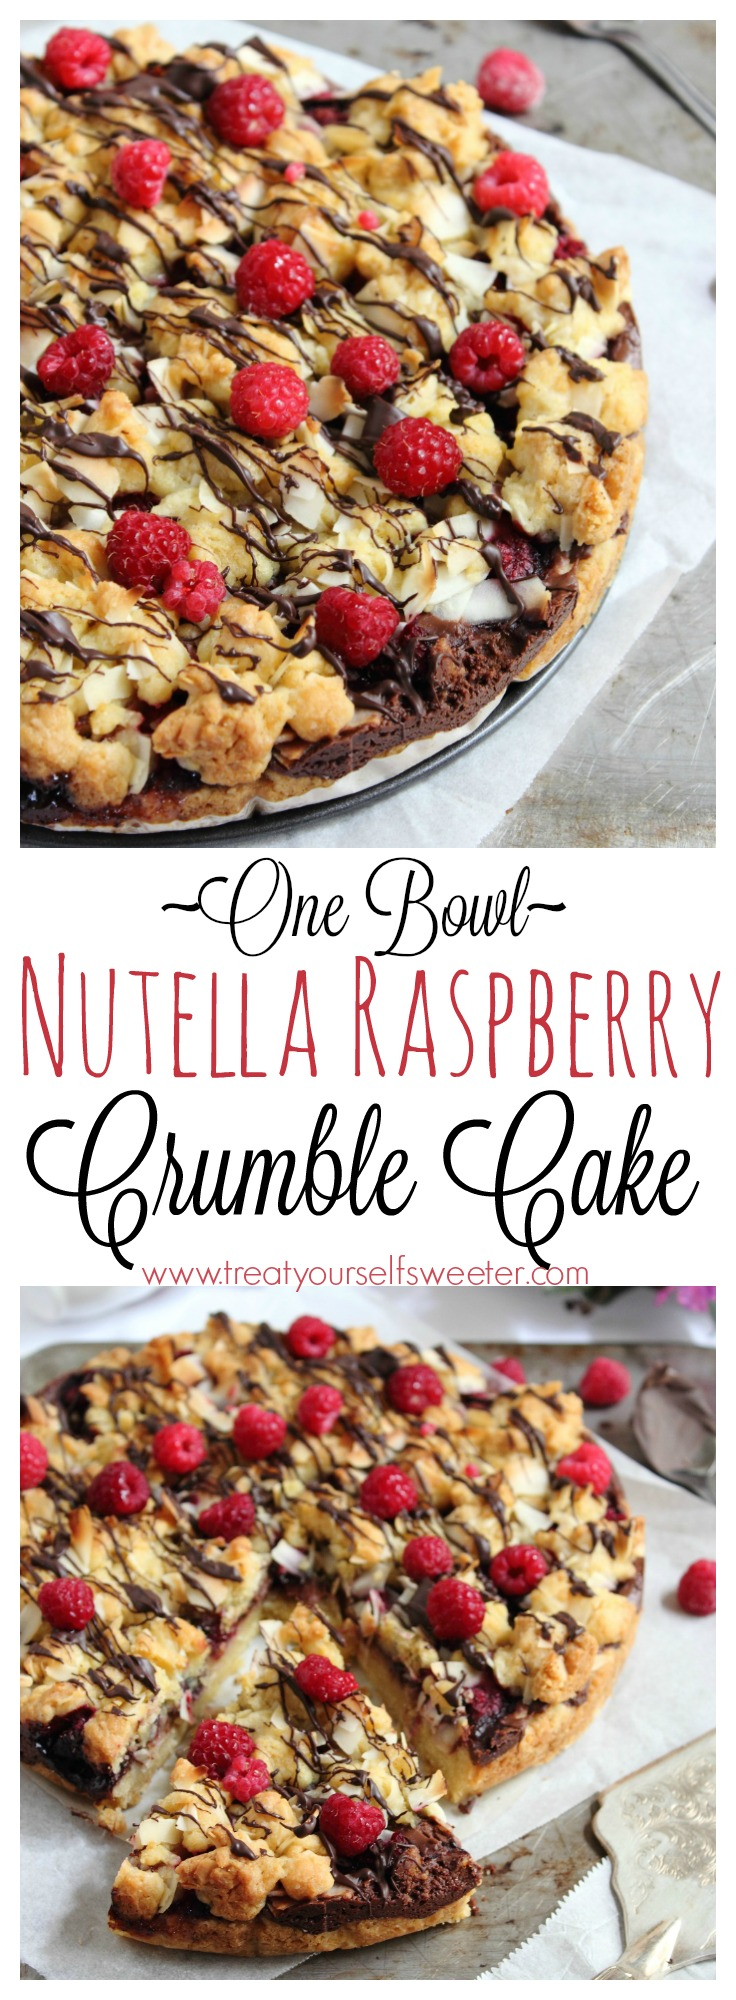 Nutella Raspberry Crumble Cake, All Made in One Bowl!